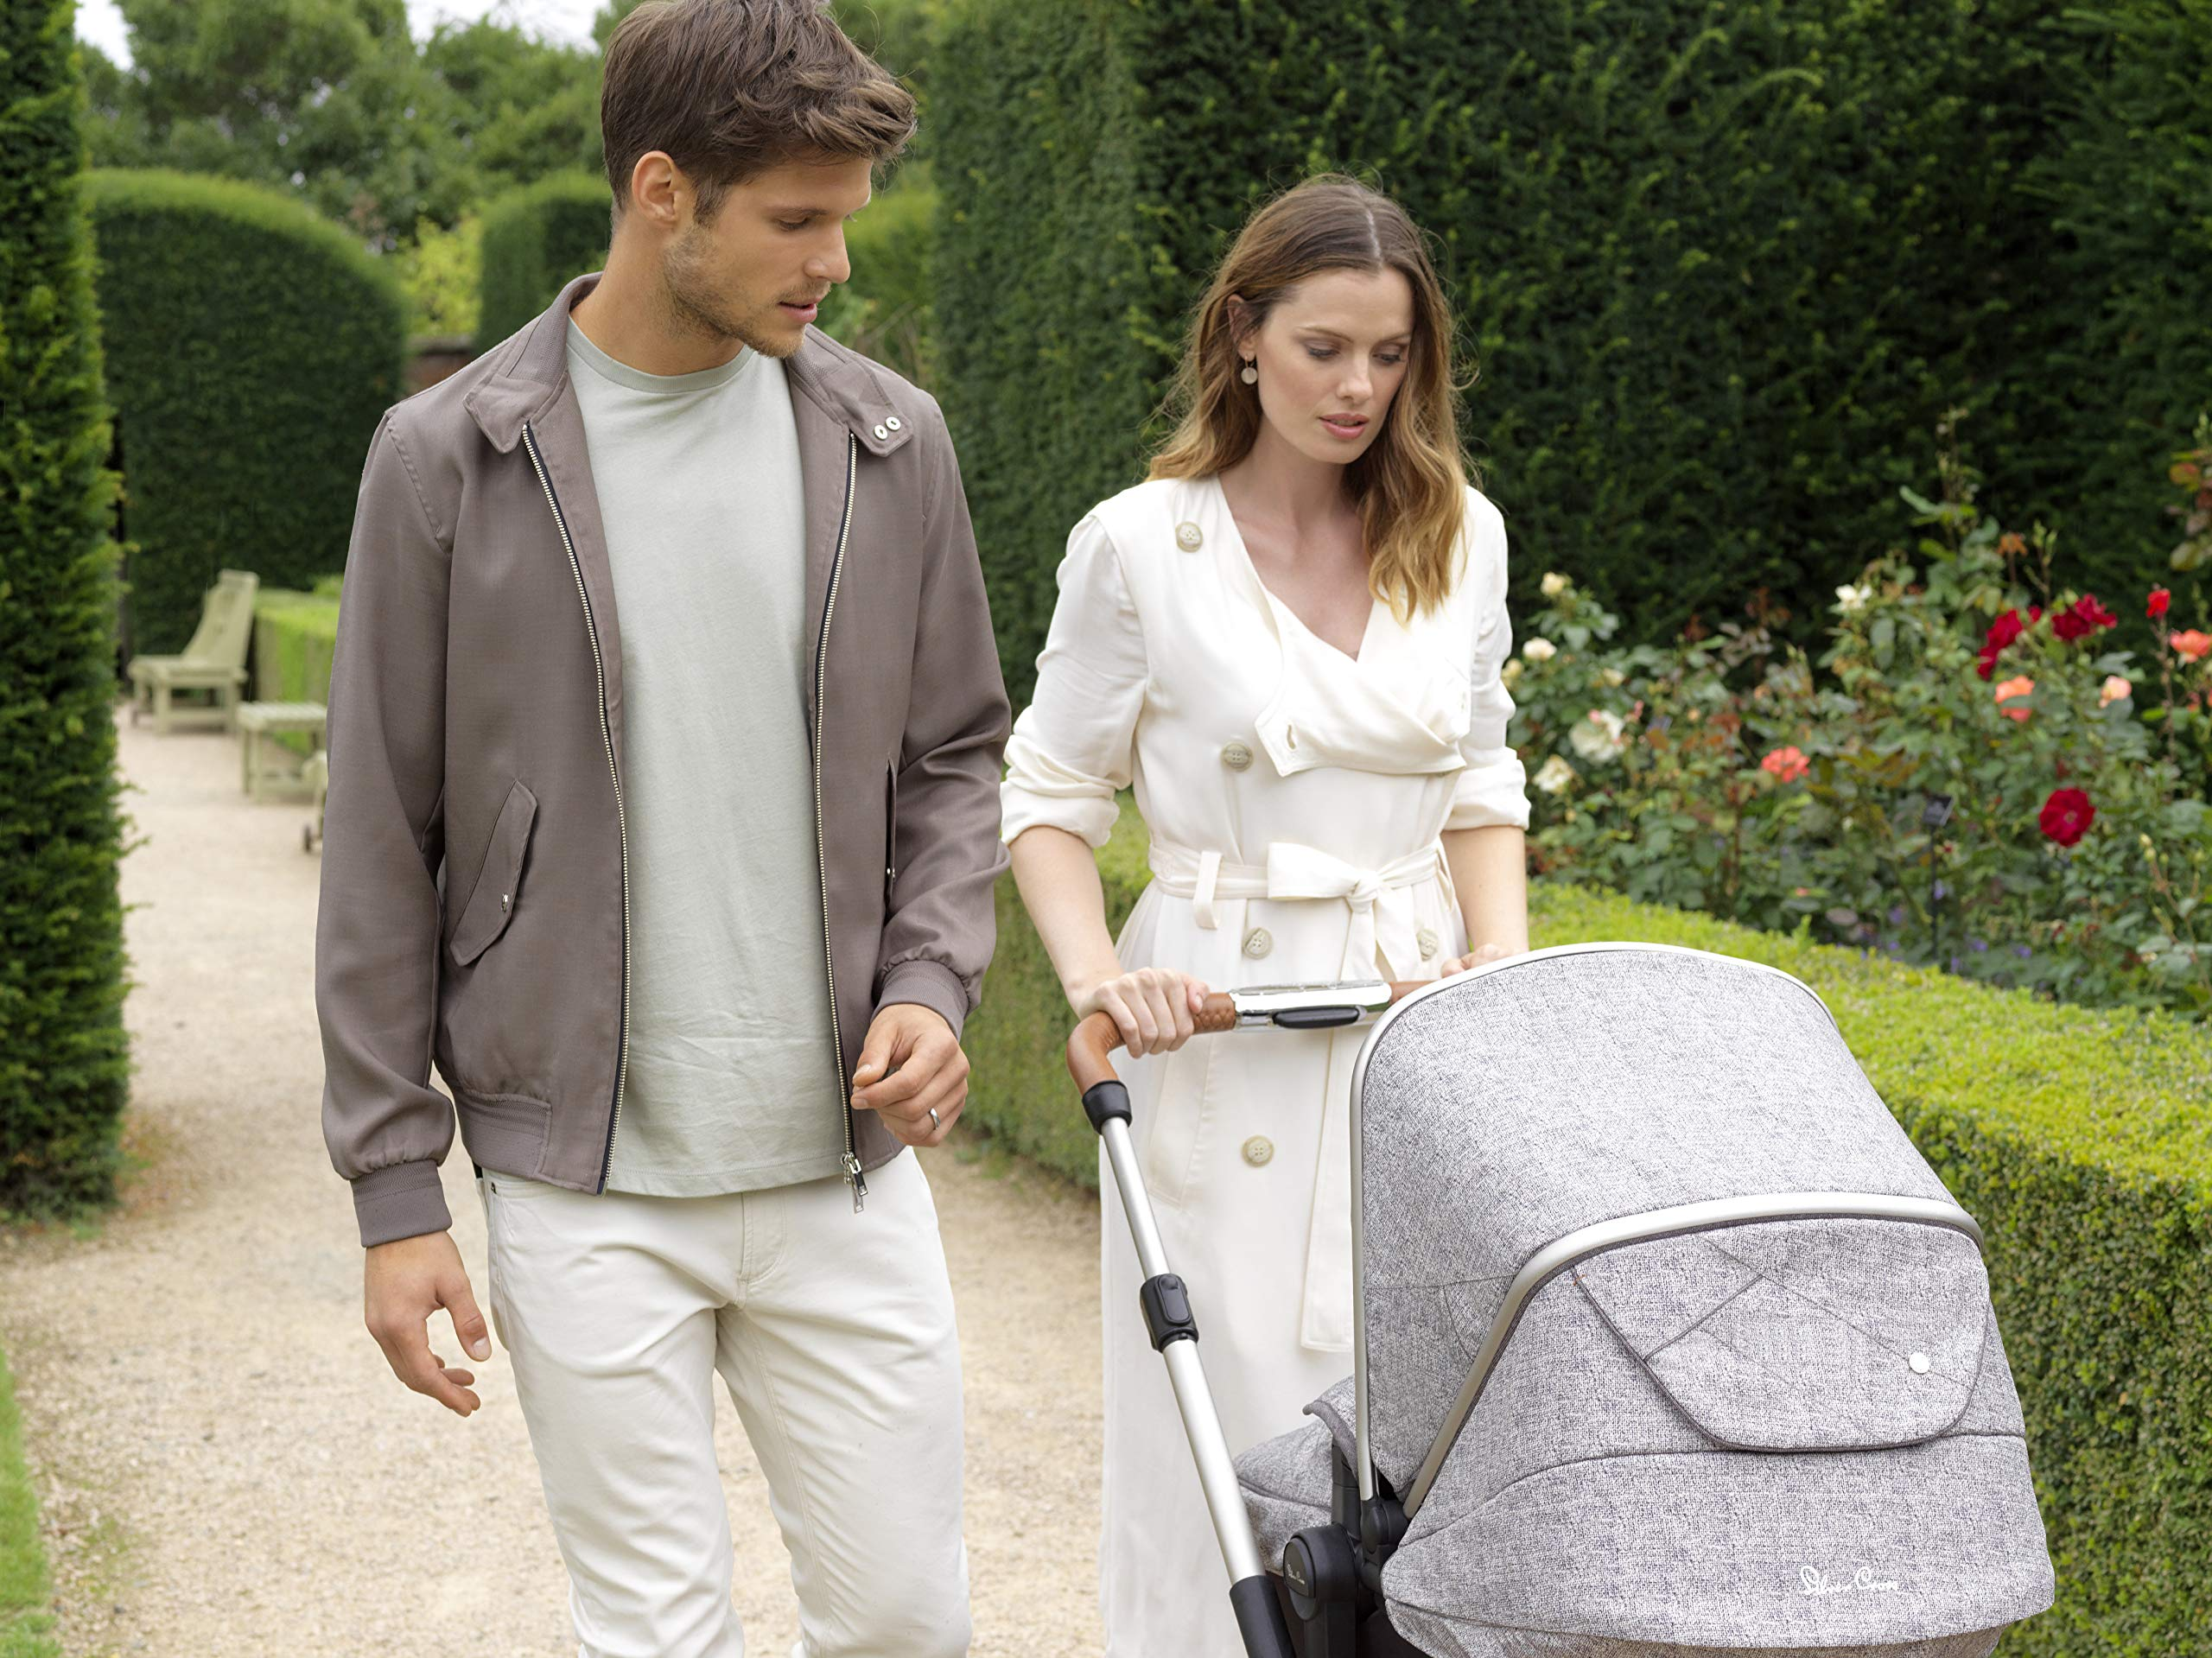 Silver Cross Wayfarer Camden Silver Cross Complete pram system that includes everything you need from birth to toddler Includes a lie-flat carrycot for your new born that is suitable for overnight sleeping Compact, lightweight and convenient, hardwearing and durable 9